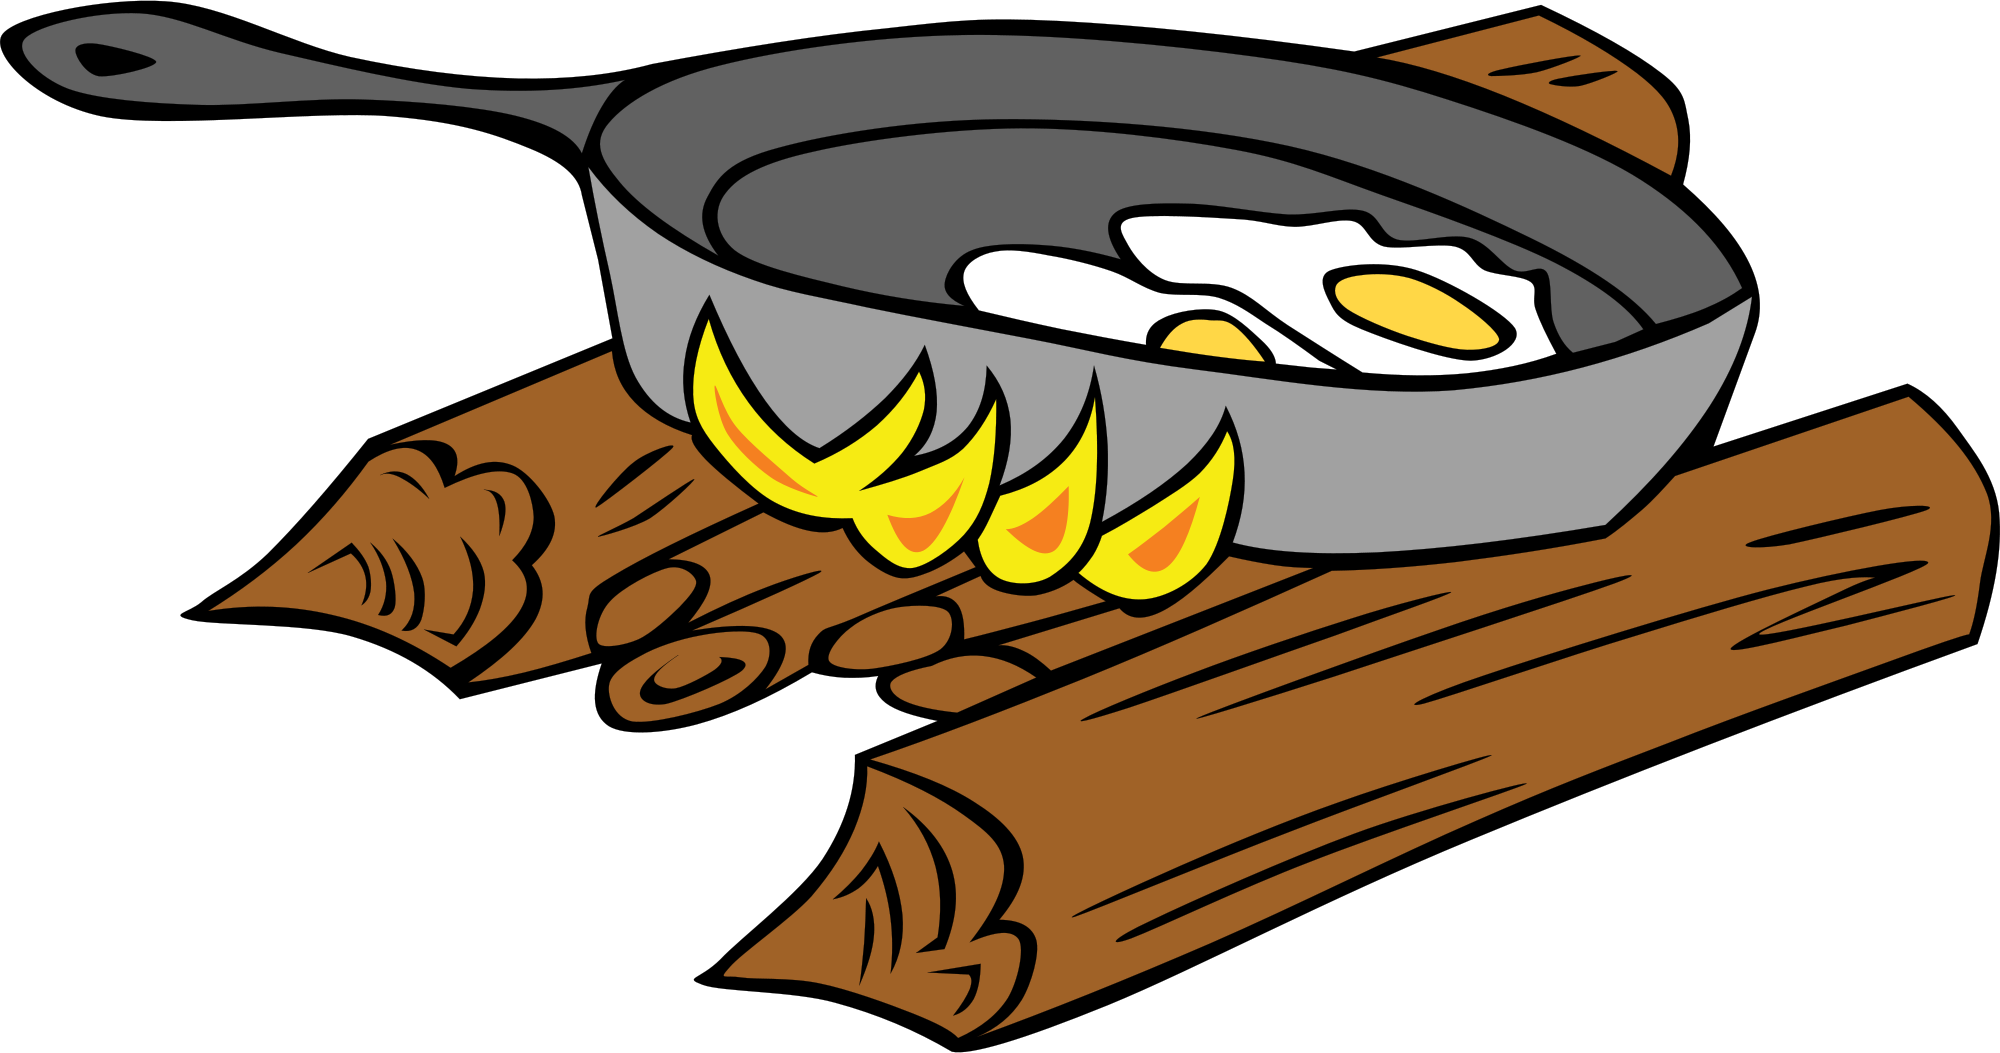 frying clipart fire cooking